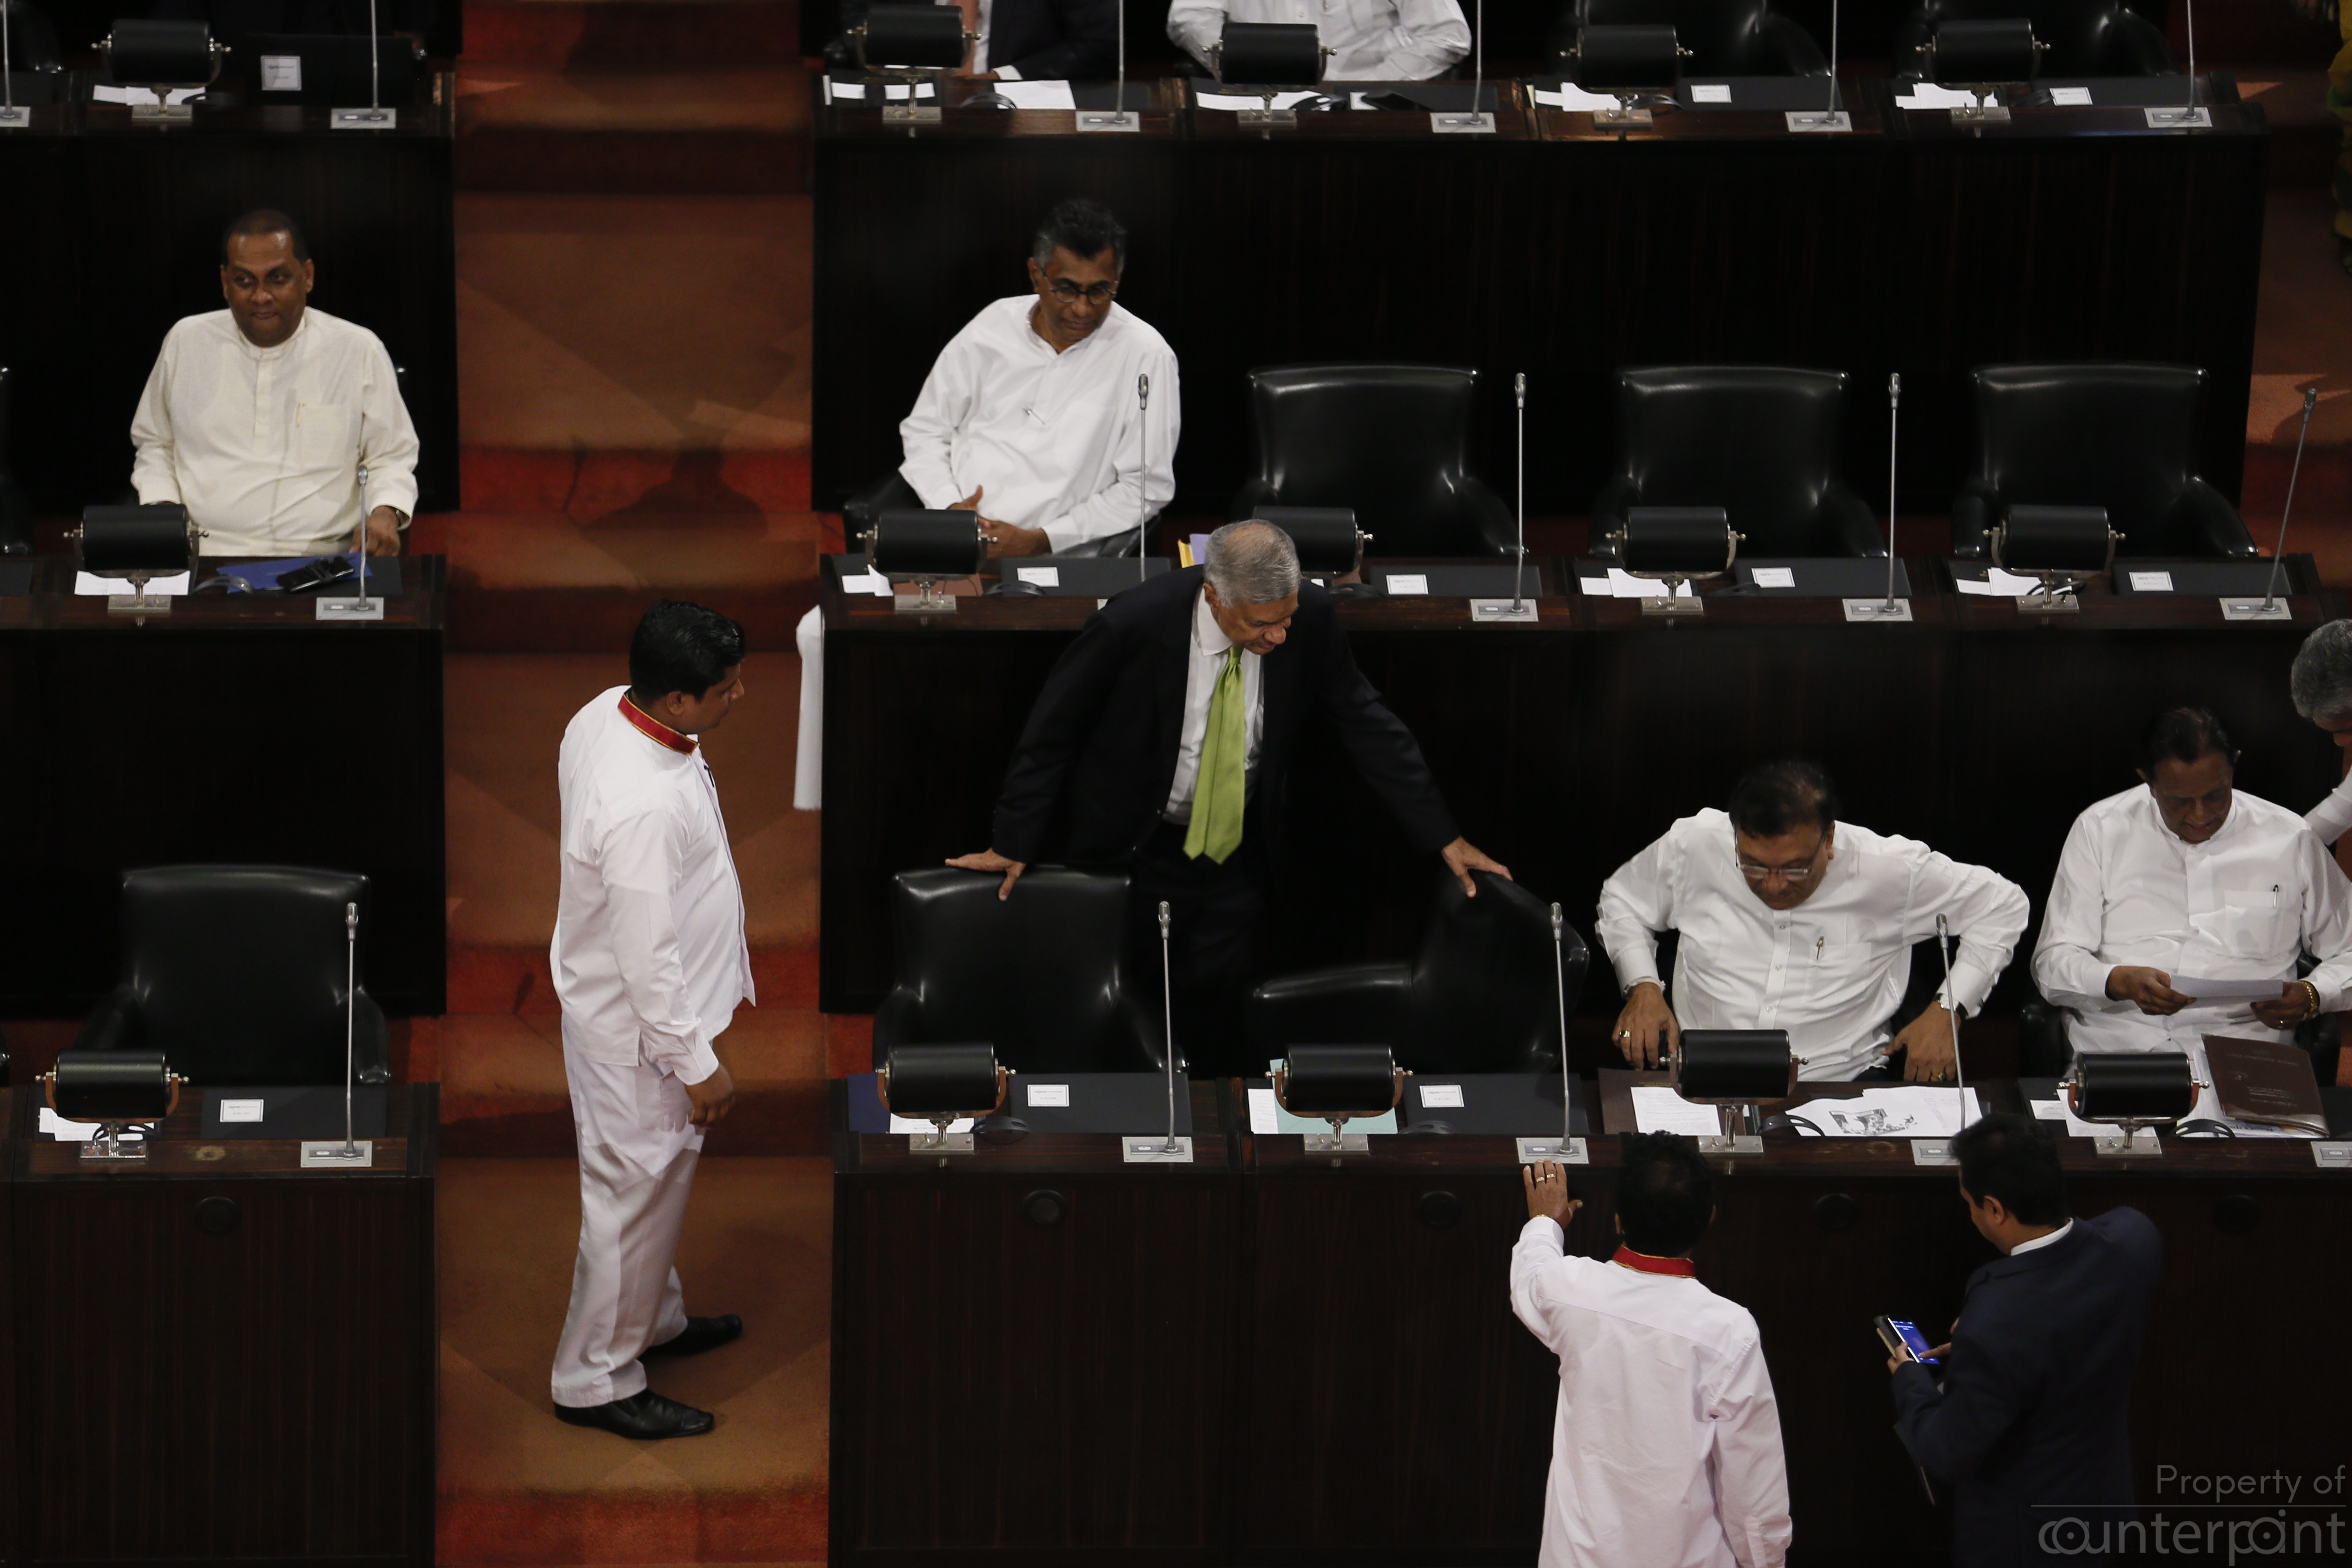 Prime Minister Ranil Wickremesinghe has been a Presidential hopeful for decades. Abolishing the Executive Presidency would mean he will never get that opportunity.